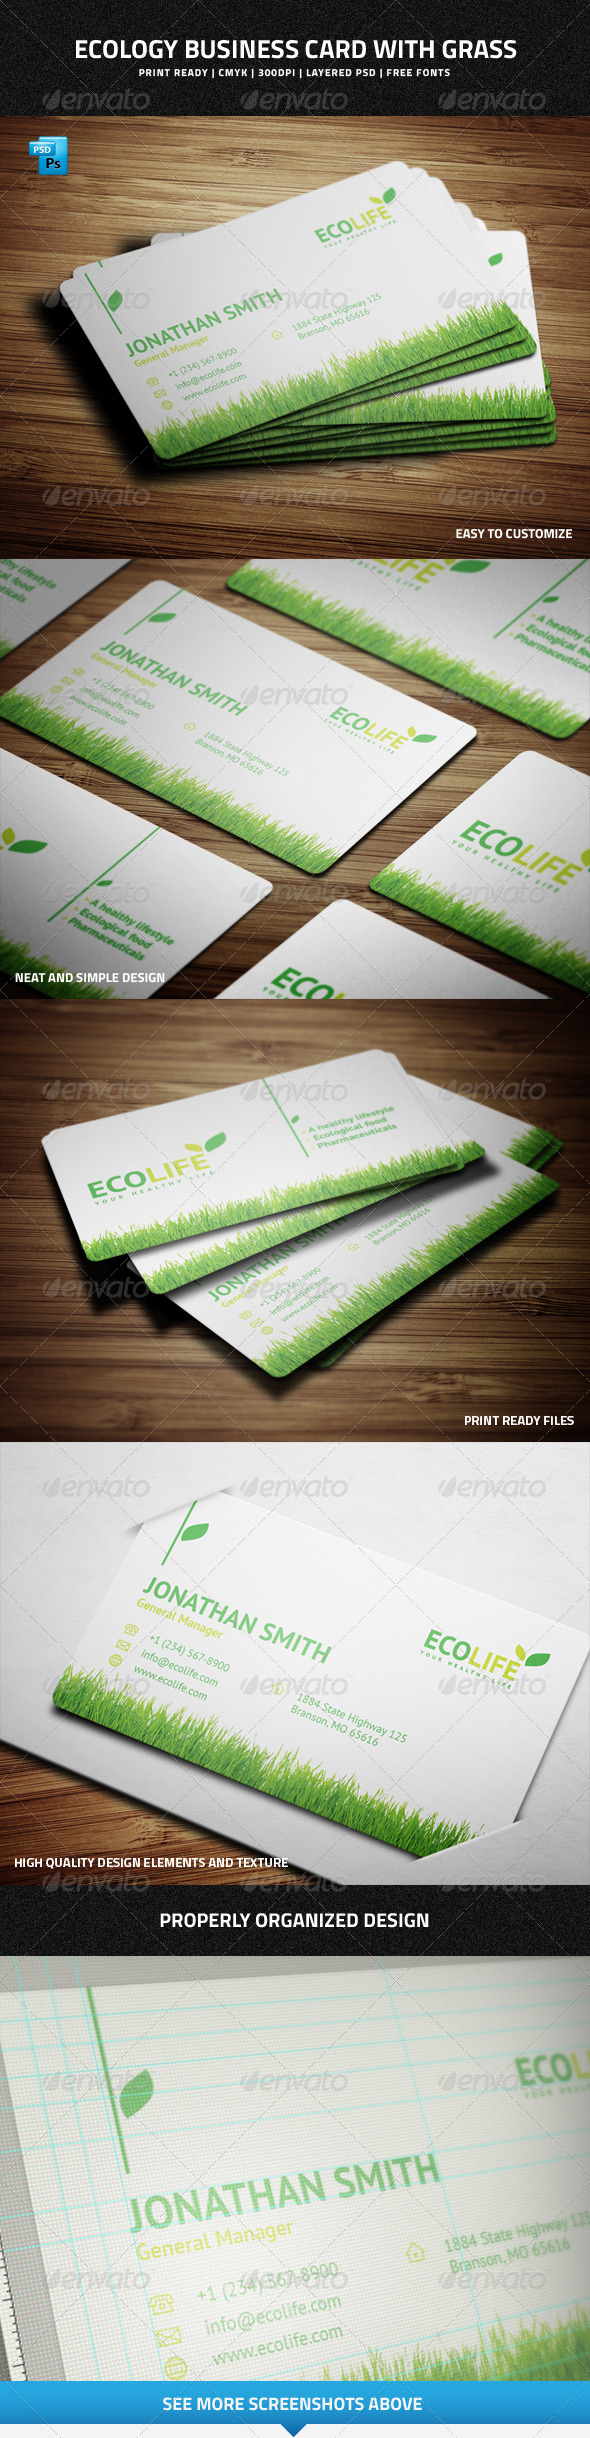 GraphicRiver Ecology Business Card with Grass 6977448